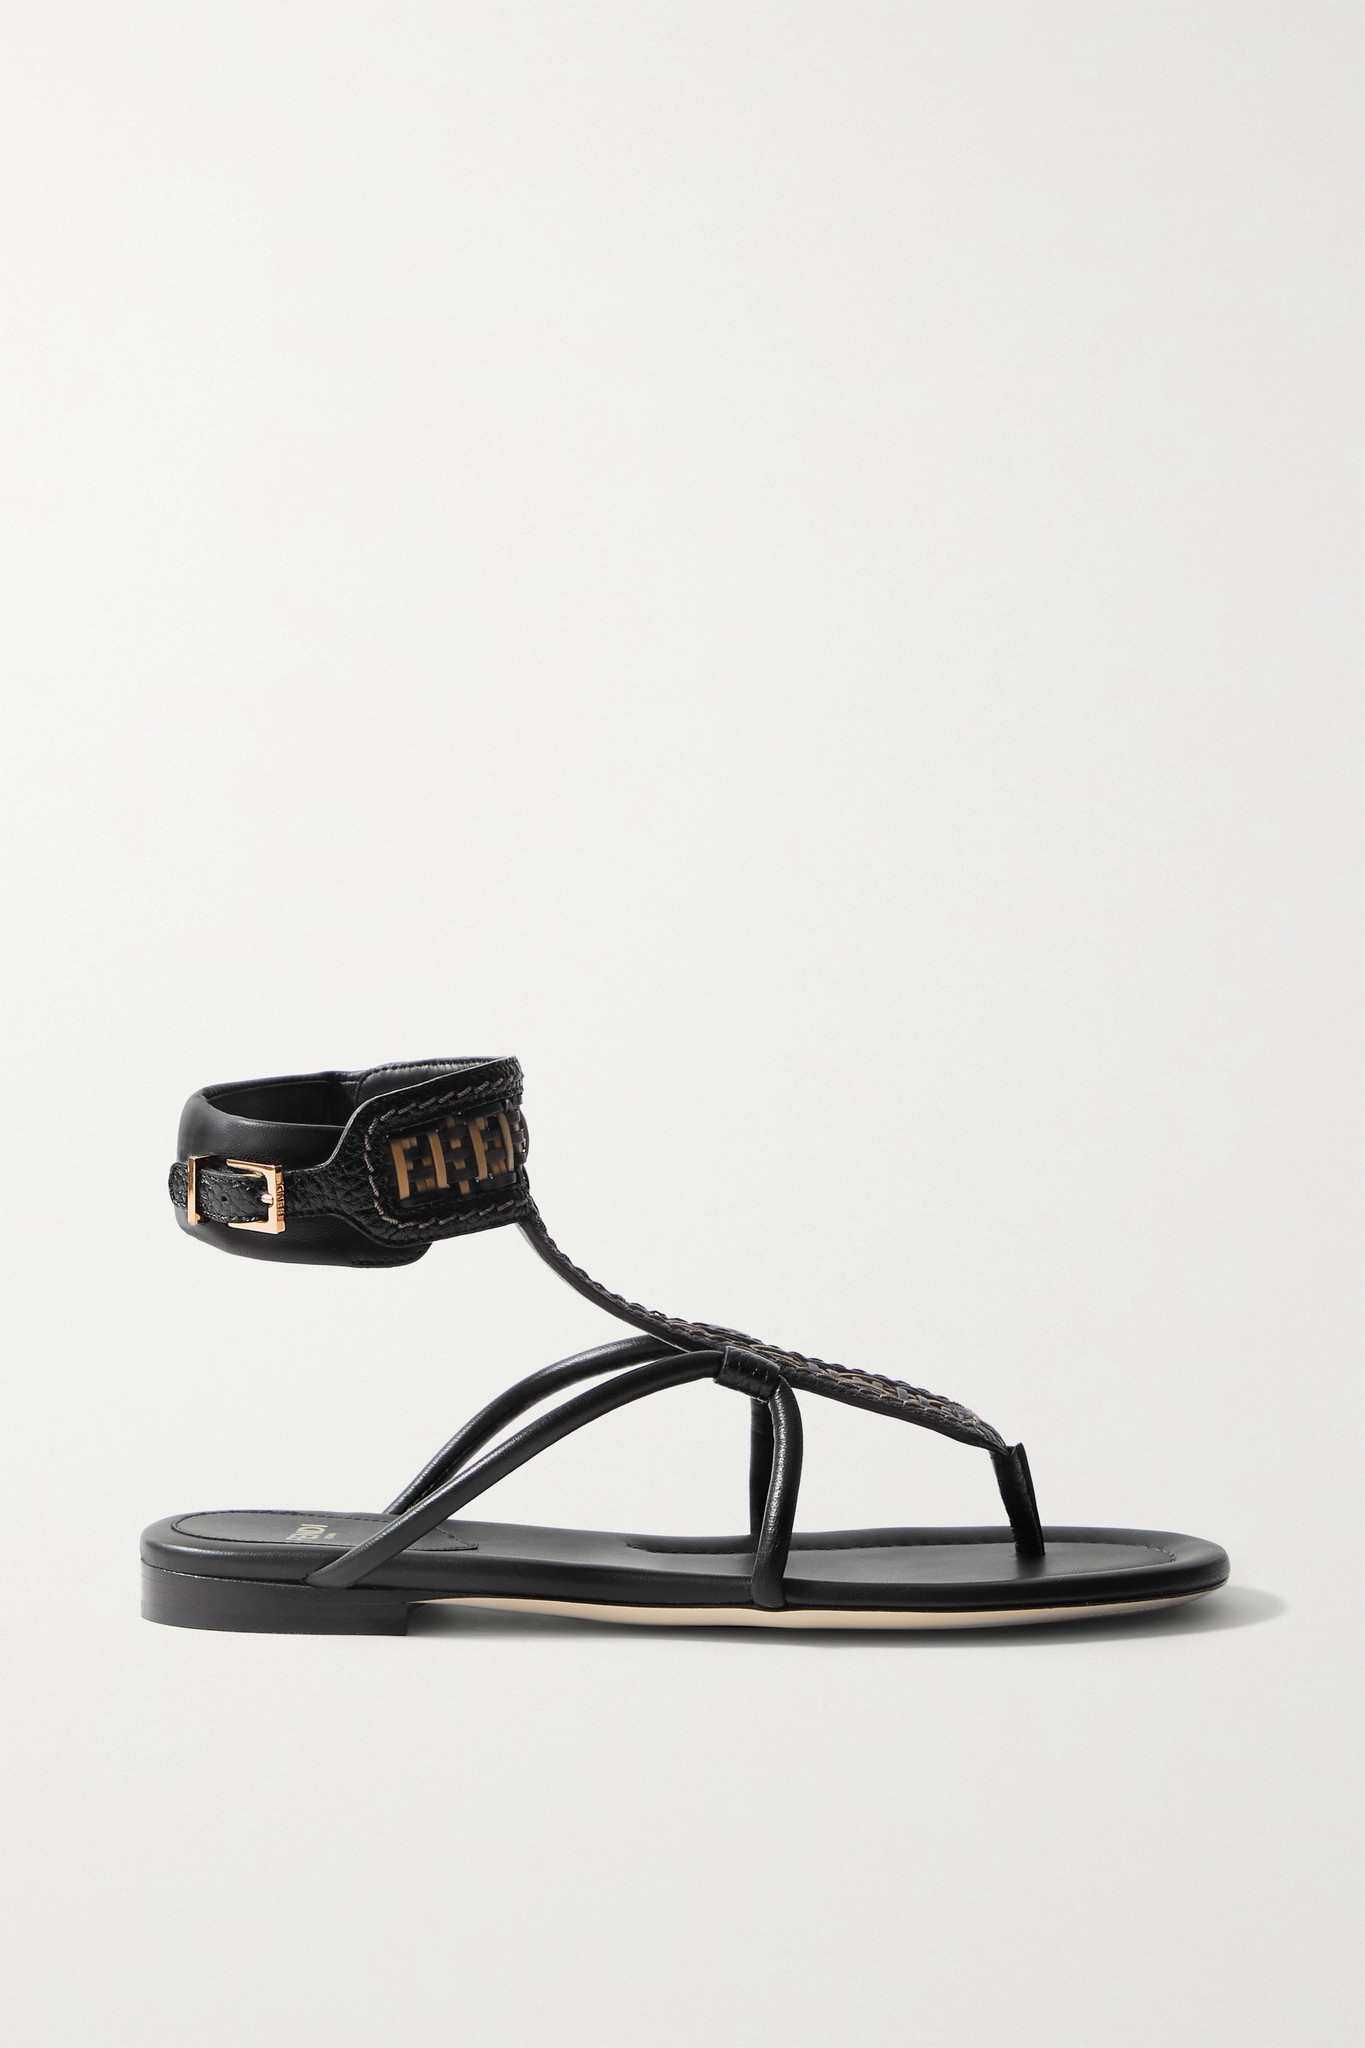 FENDI - Woven Leather Sandals - Brown - IT36